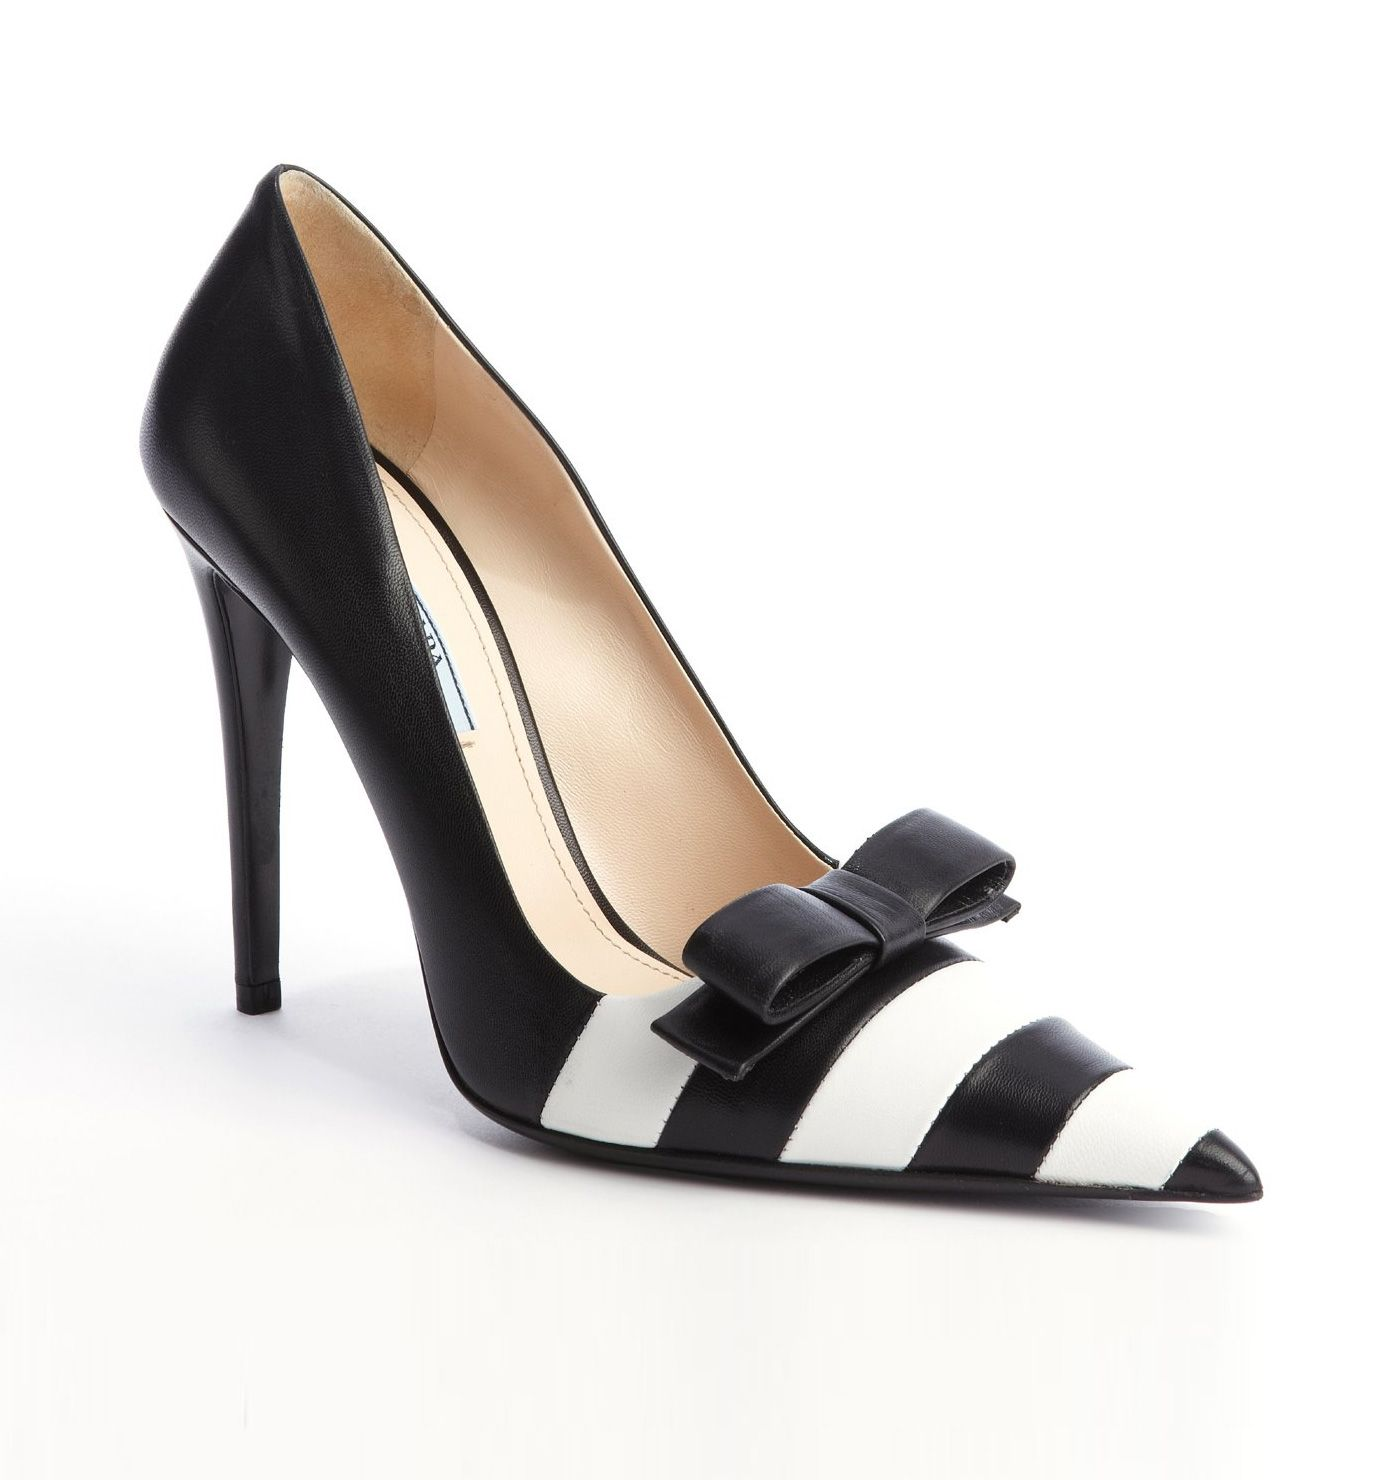 PRADA Black And White Striped Leather Bow Detail Pumps | Shoes ...